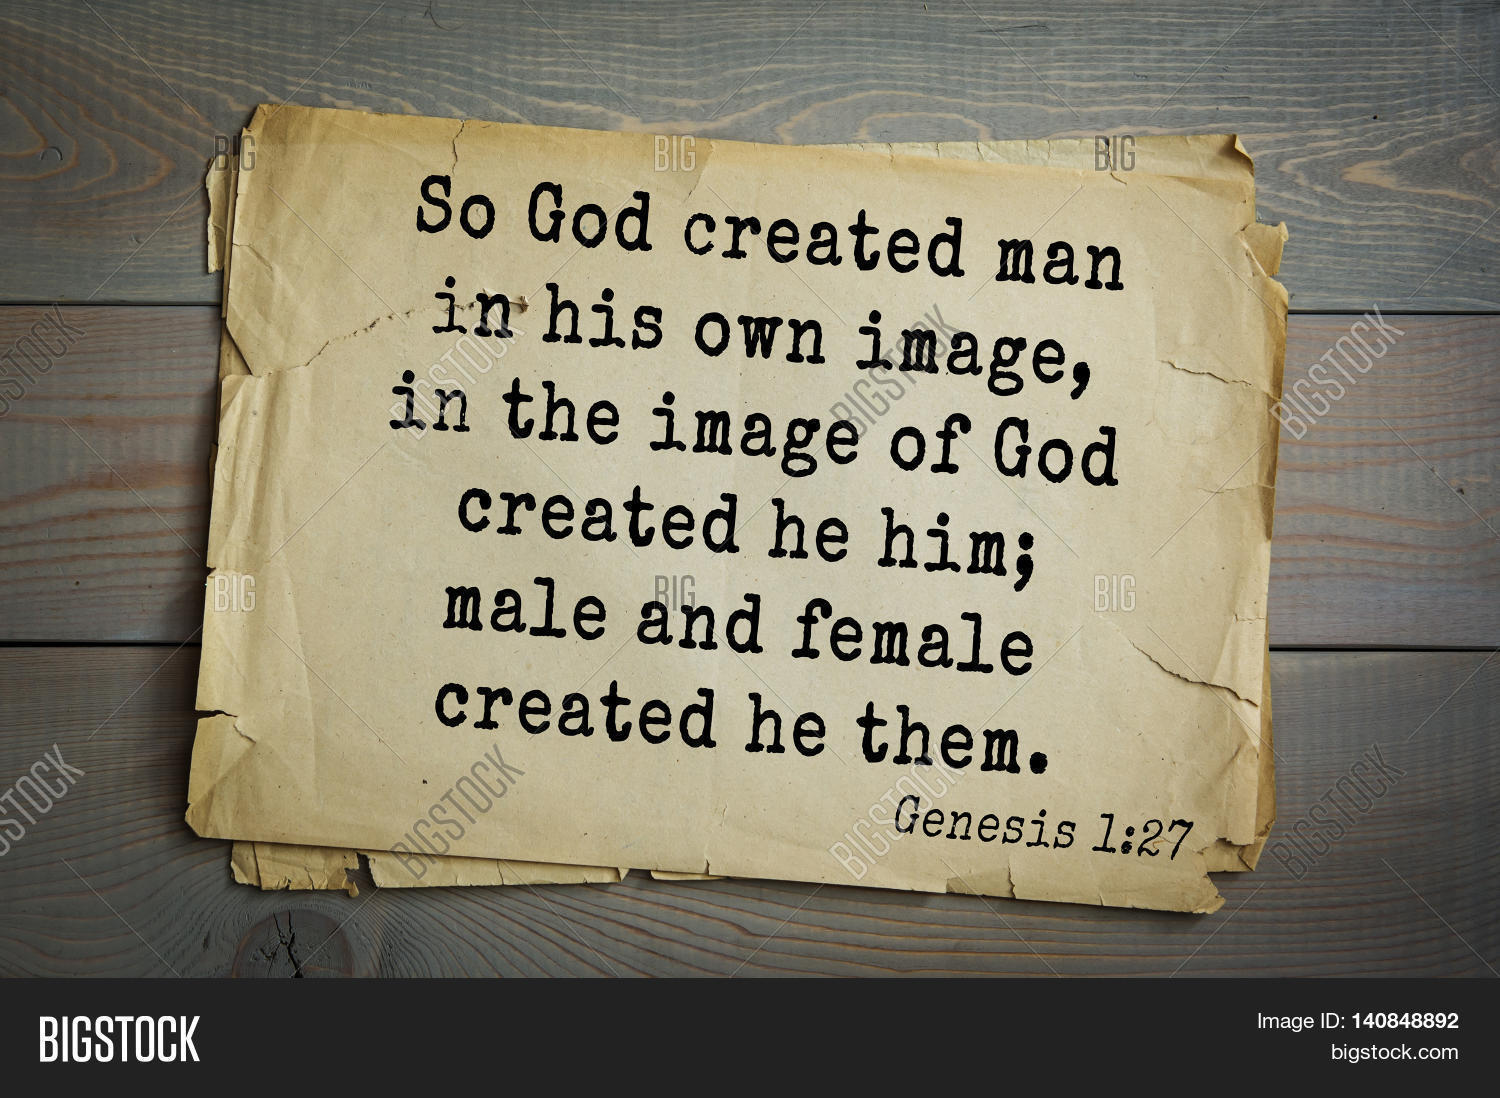 Top 500 Bible Verses Image Photo Free Trial Bigstock